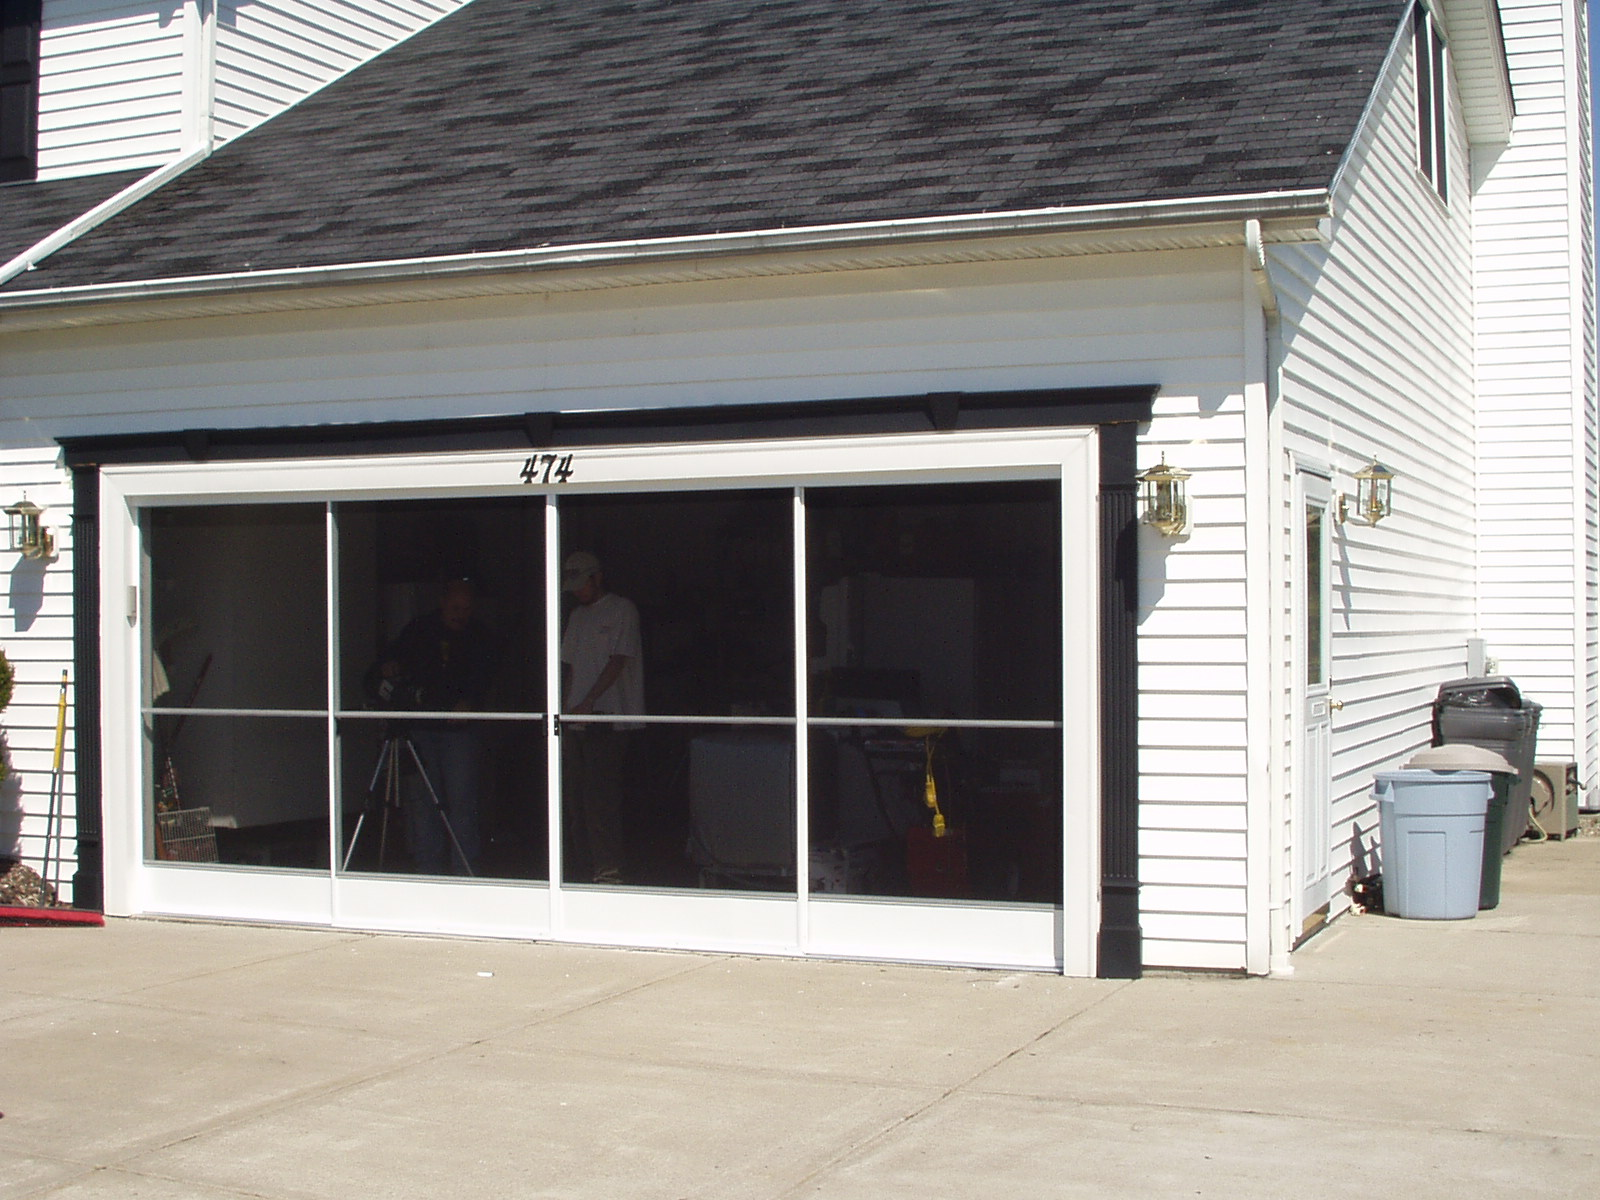 Garage screen door patio enclosure installation gallery for Screen door garage roller door